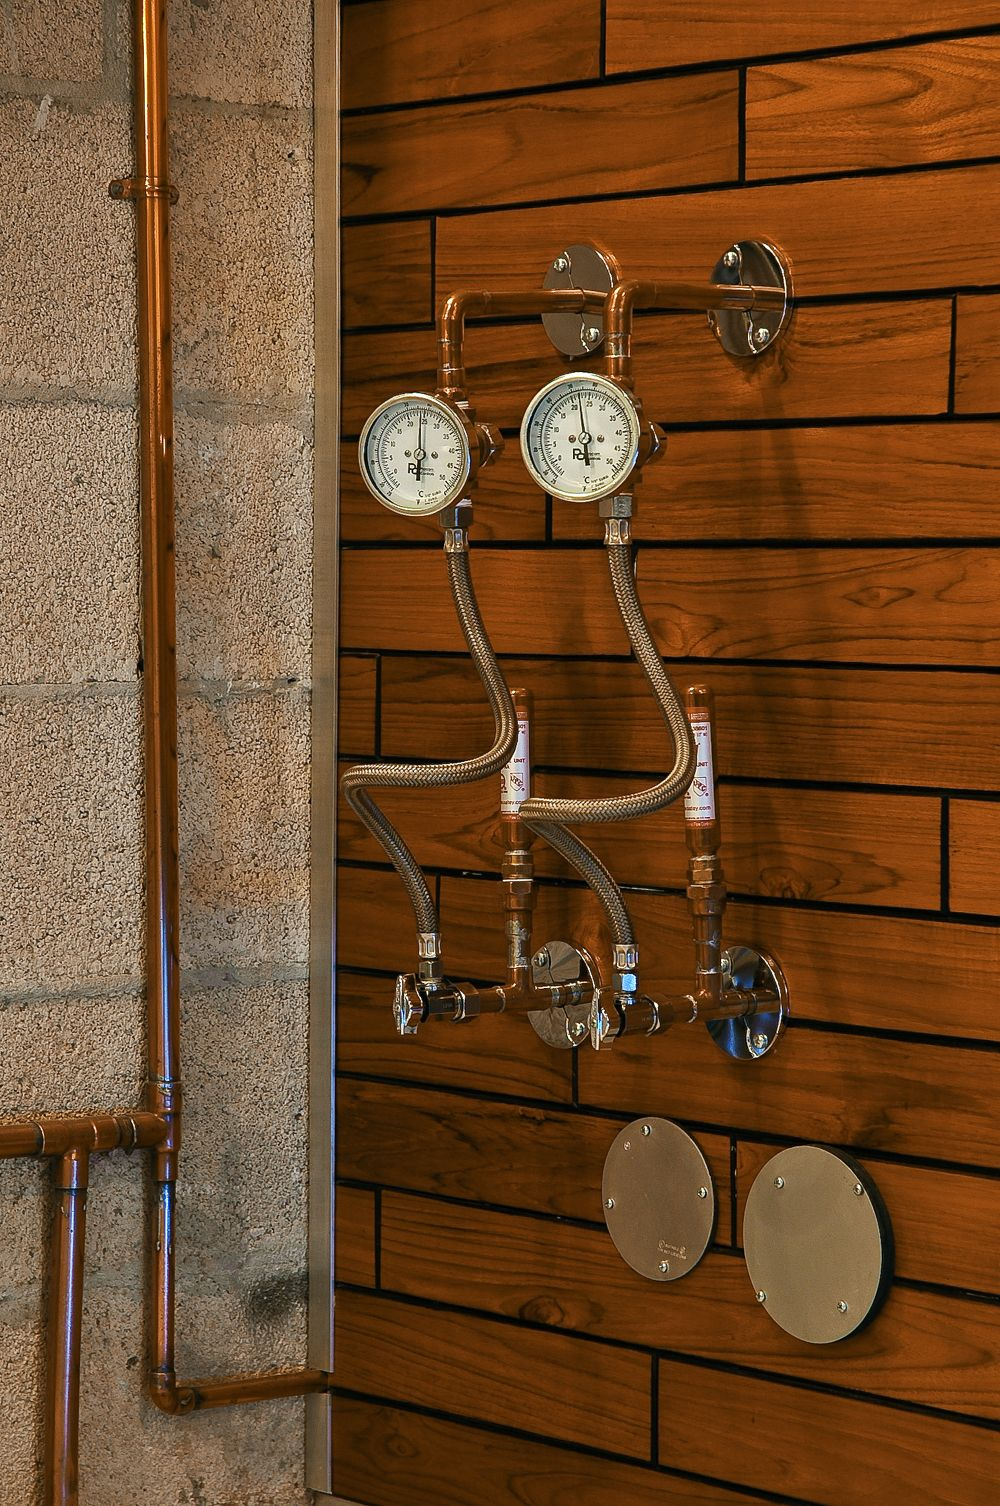 Practical Steampunk Hot And Cold Water Shutoff Valves With